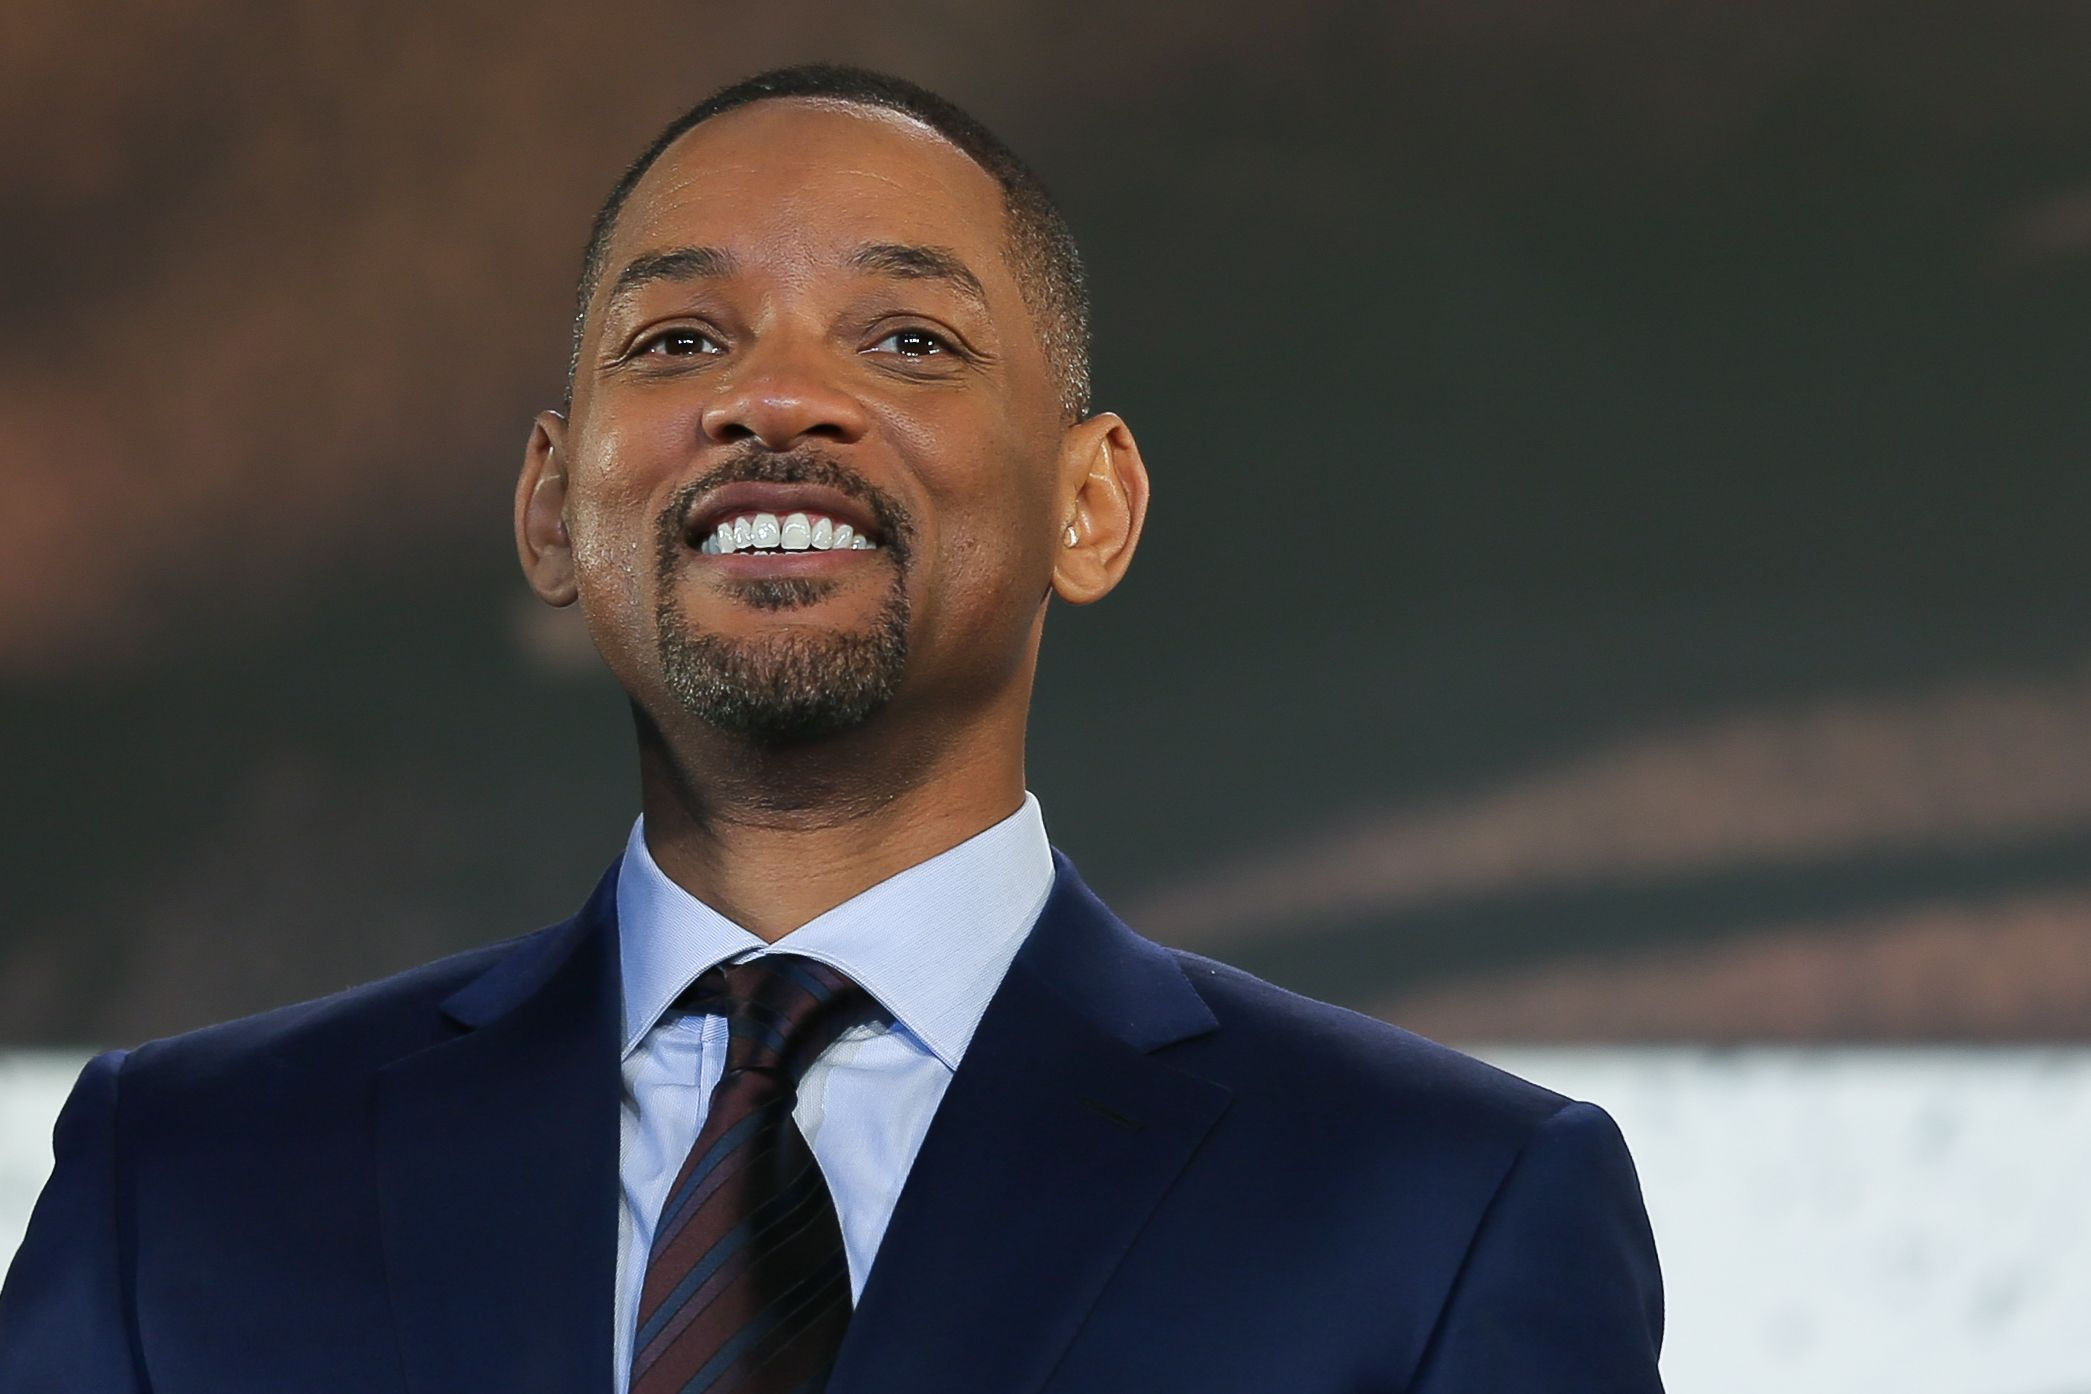 'King Richard': Will Smith's Drama About Williams Sisters' Father Is His First Pairing With a Black Director